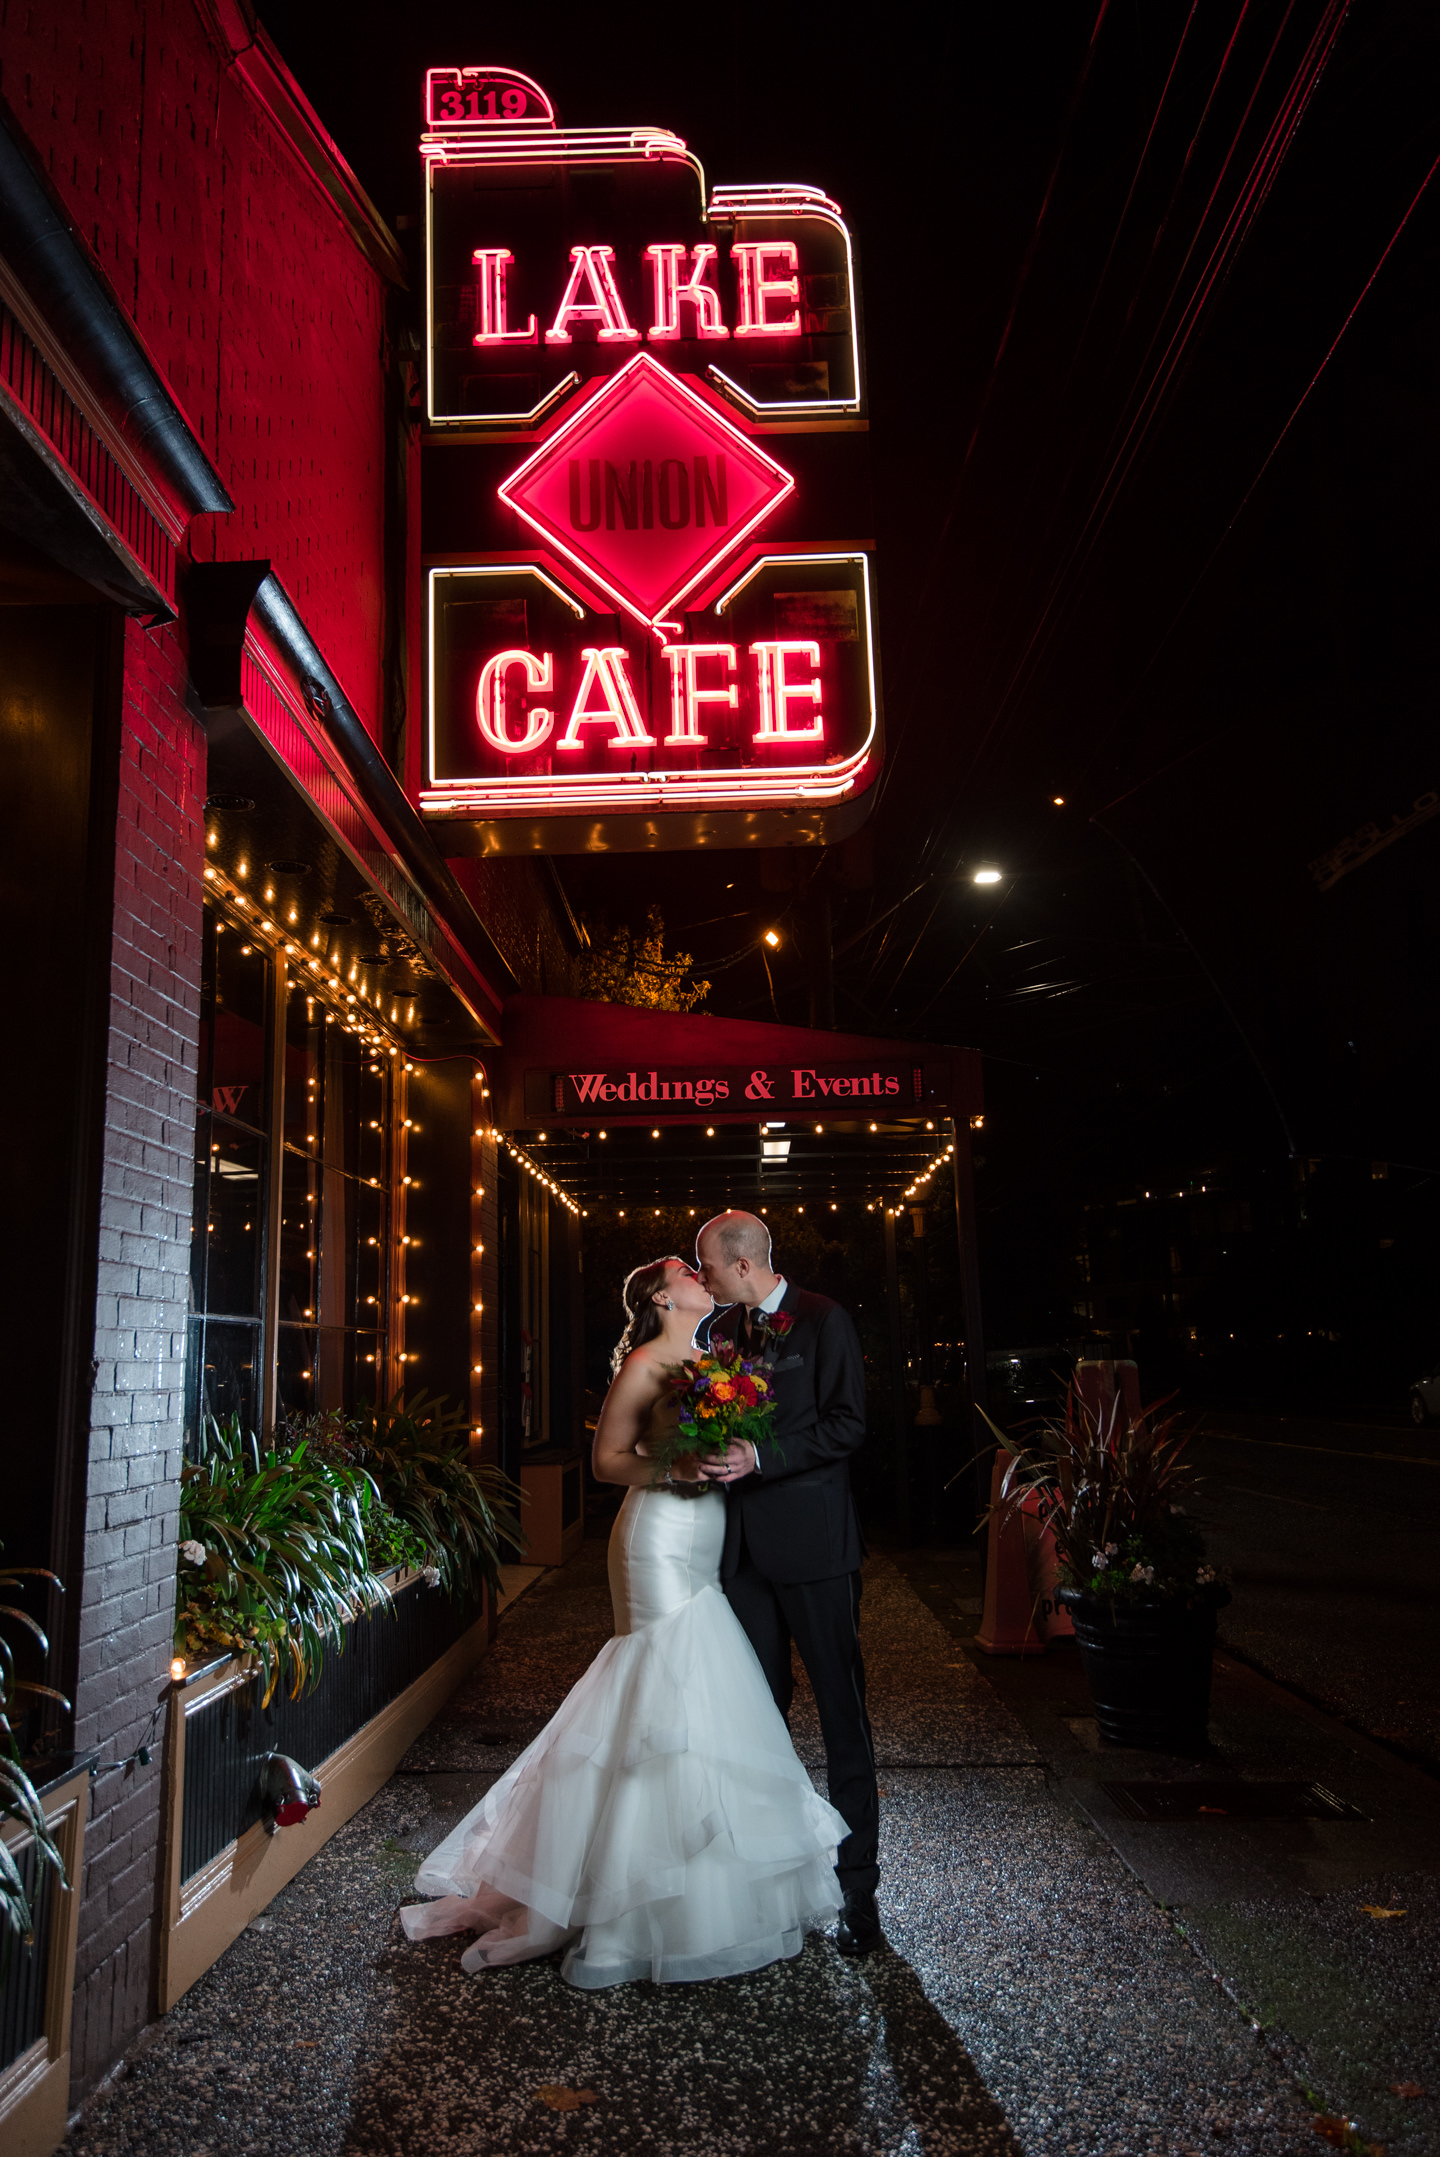 Bride and Groom Portrait at Lake Union Cafe